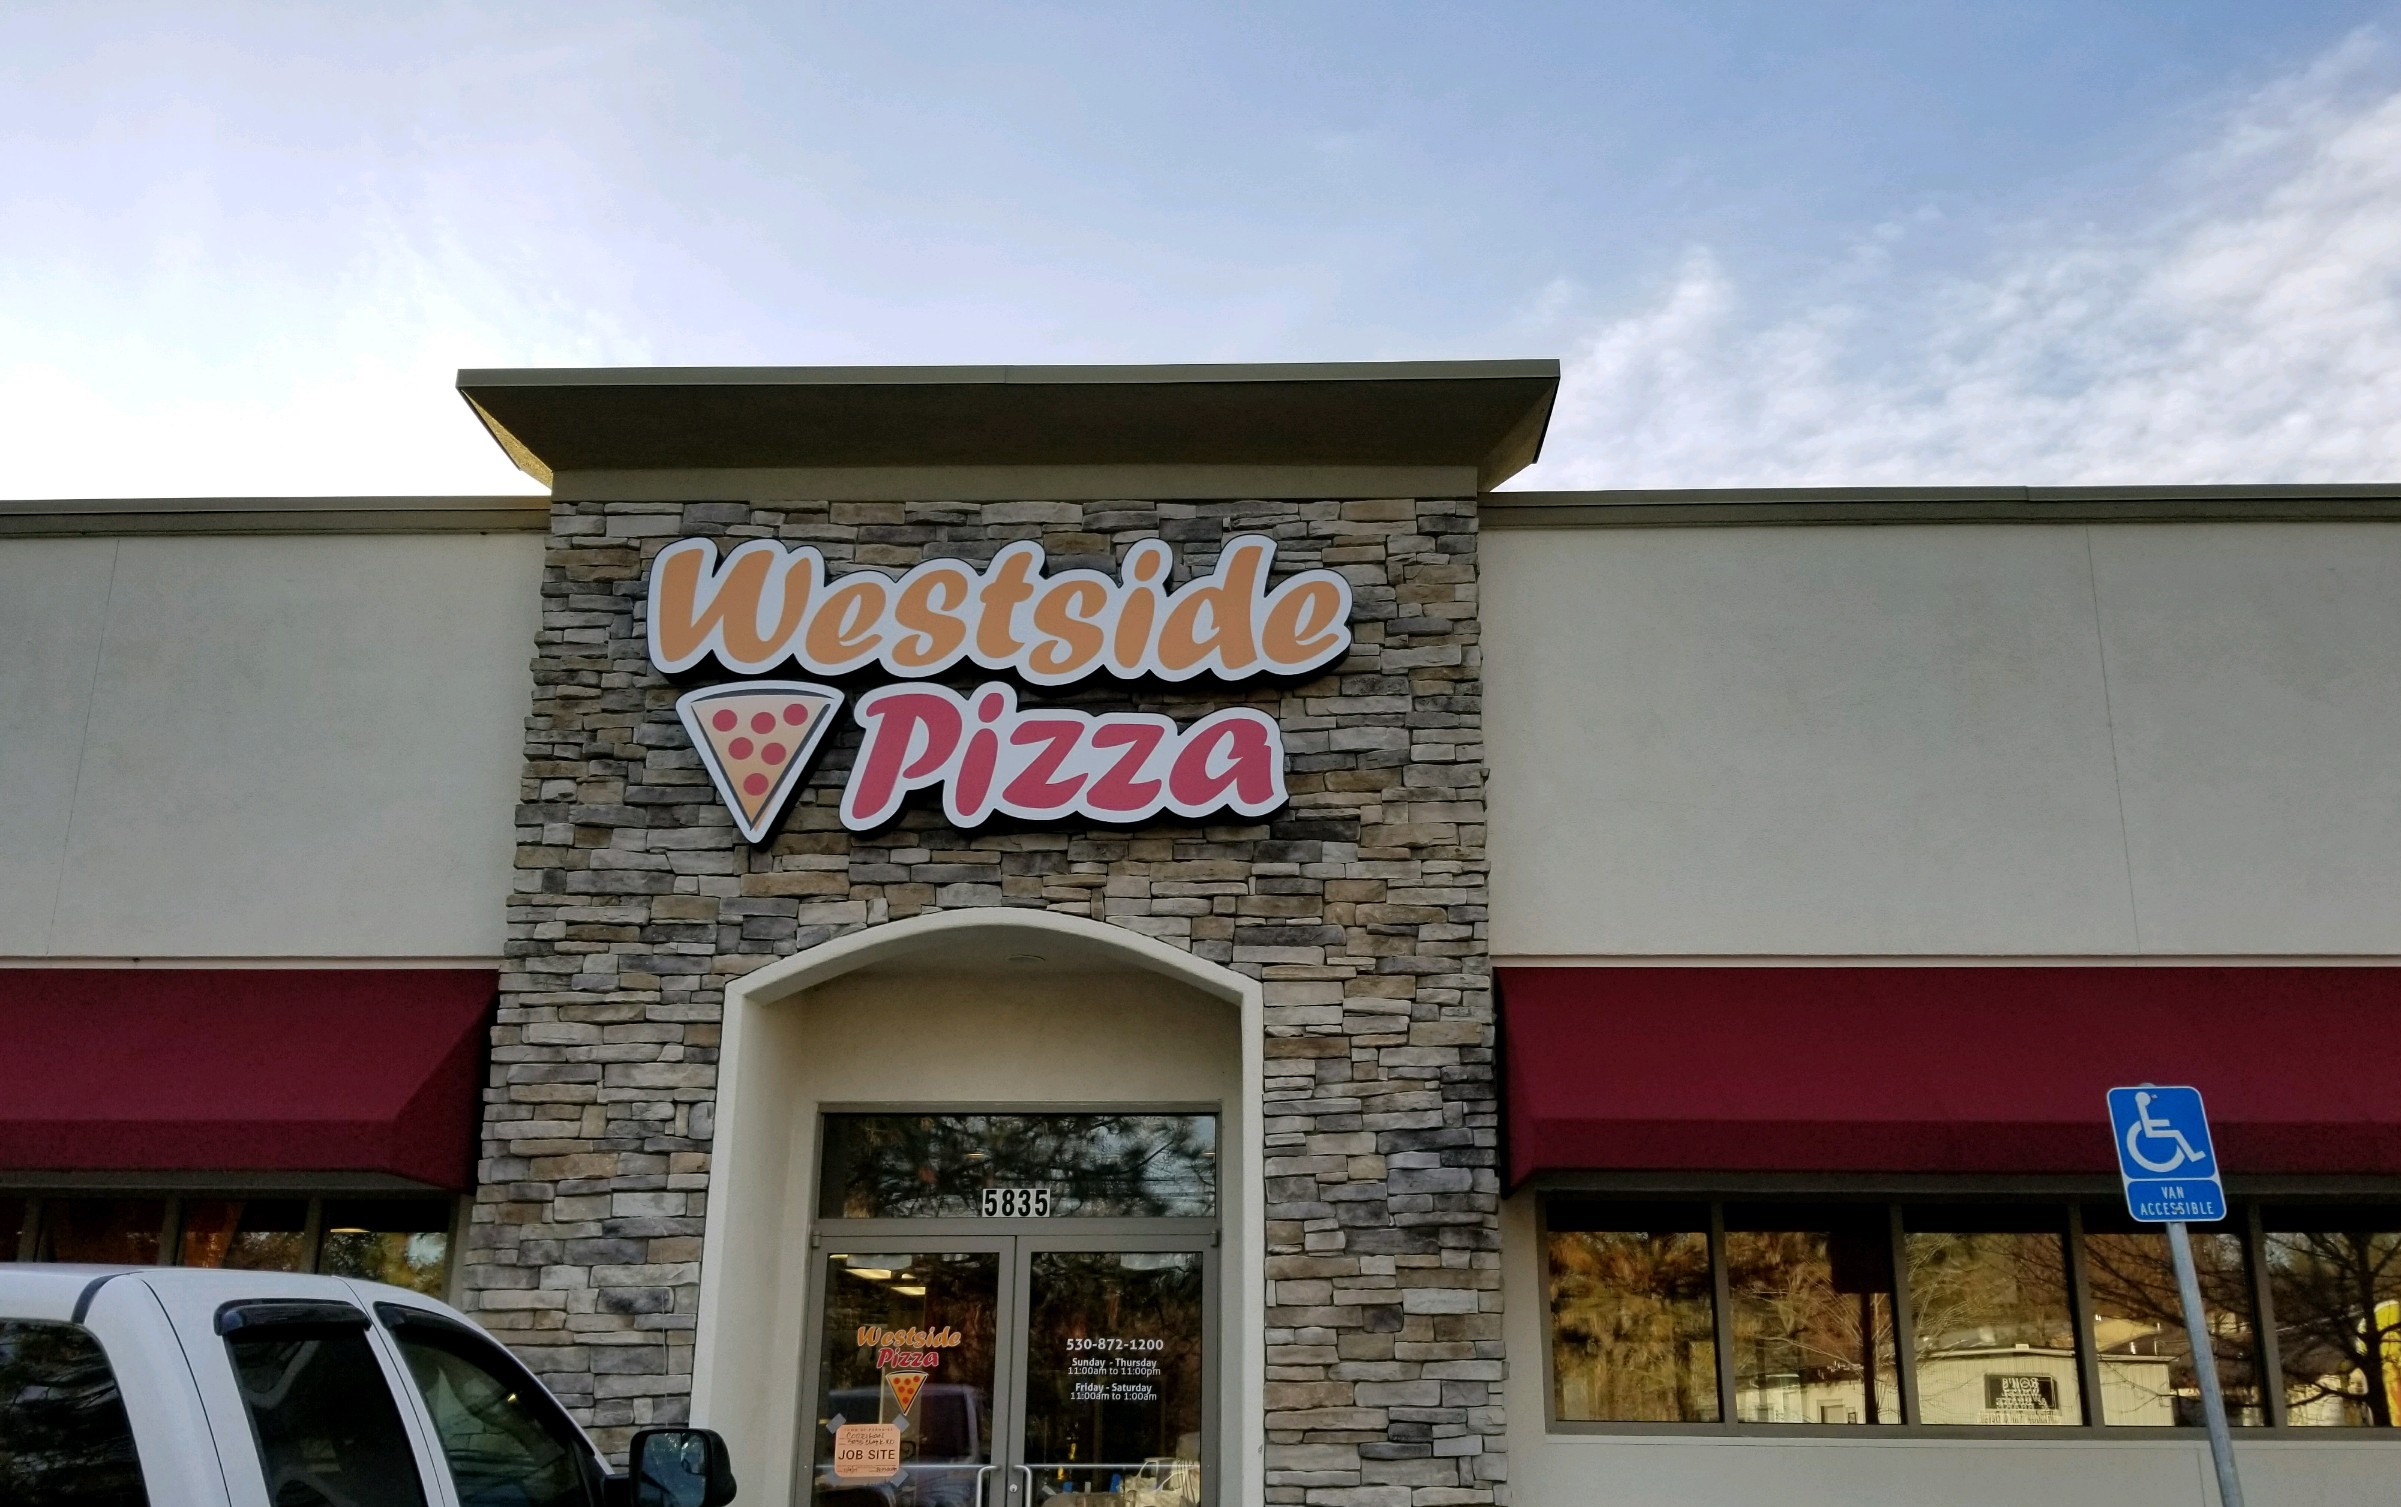 Paradise Westside Pizza Store front from the street